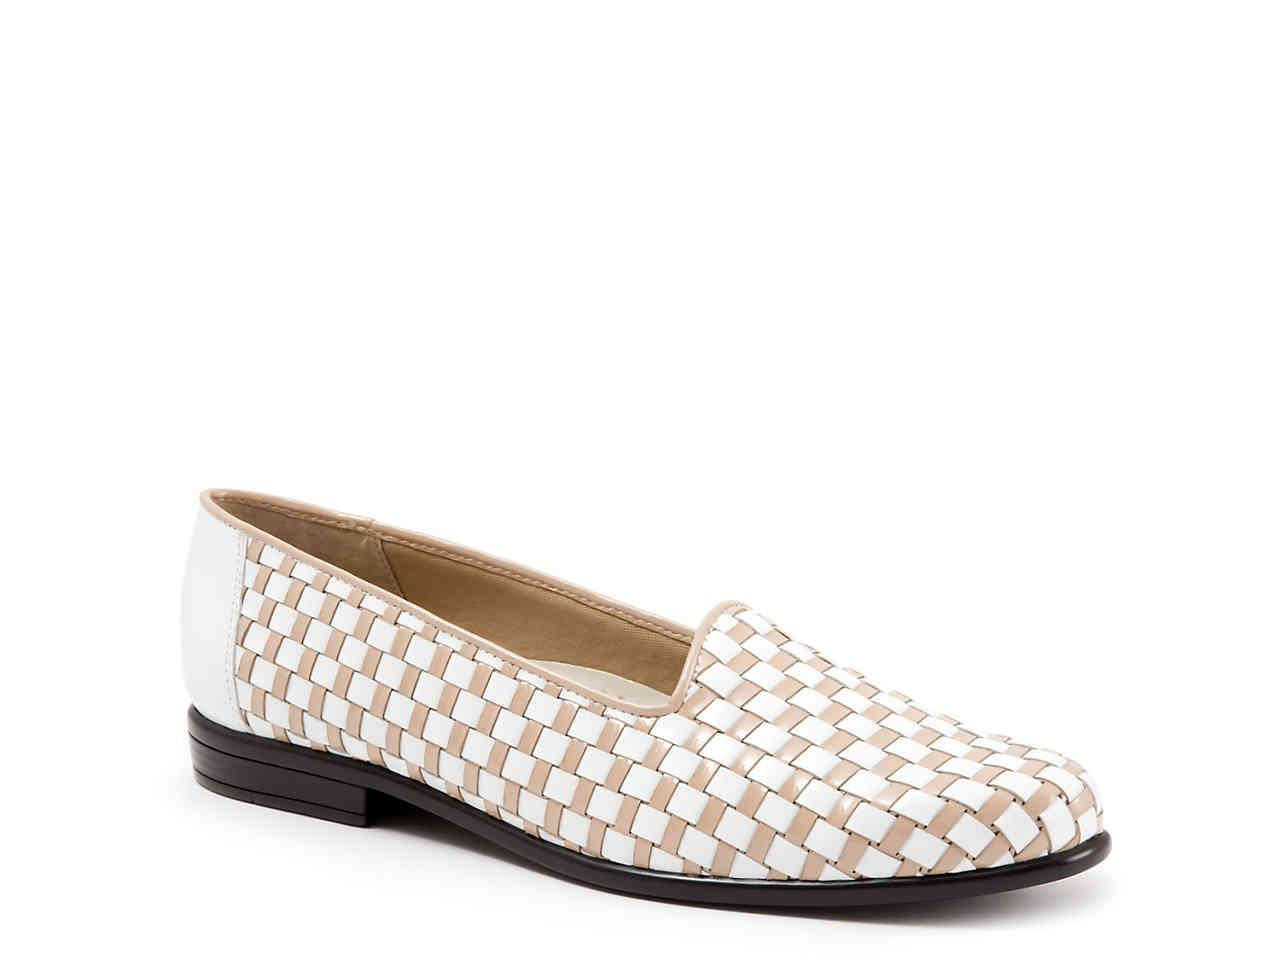 9a40f740ff Lyst - Trotters Liz Loafer in White